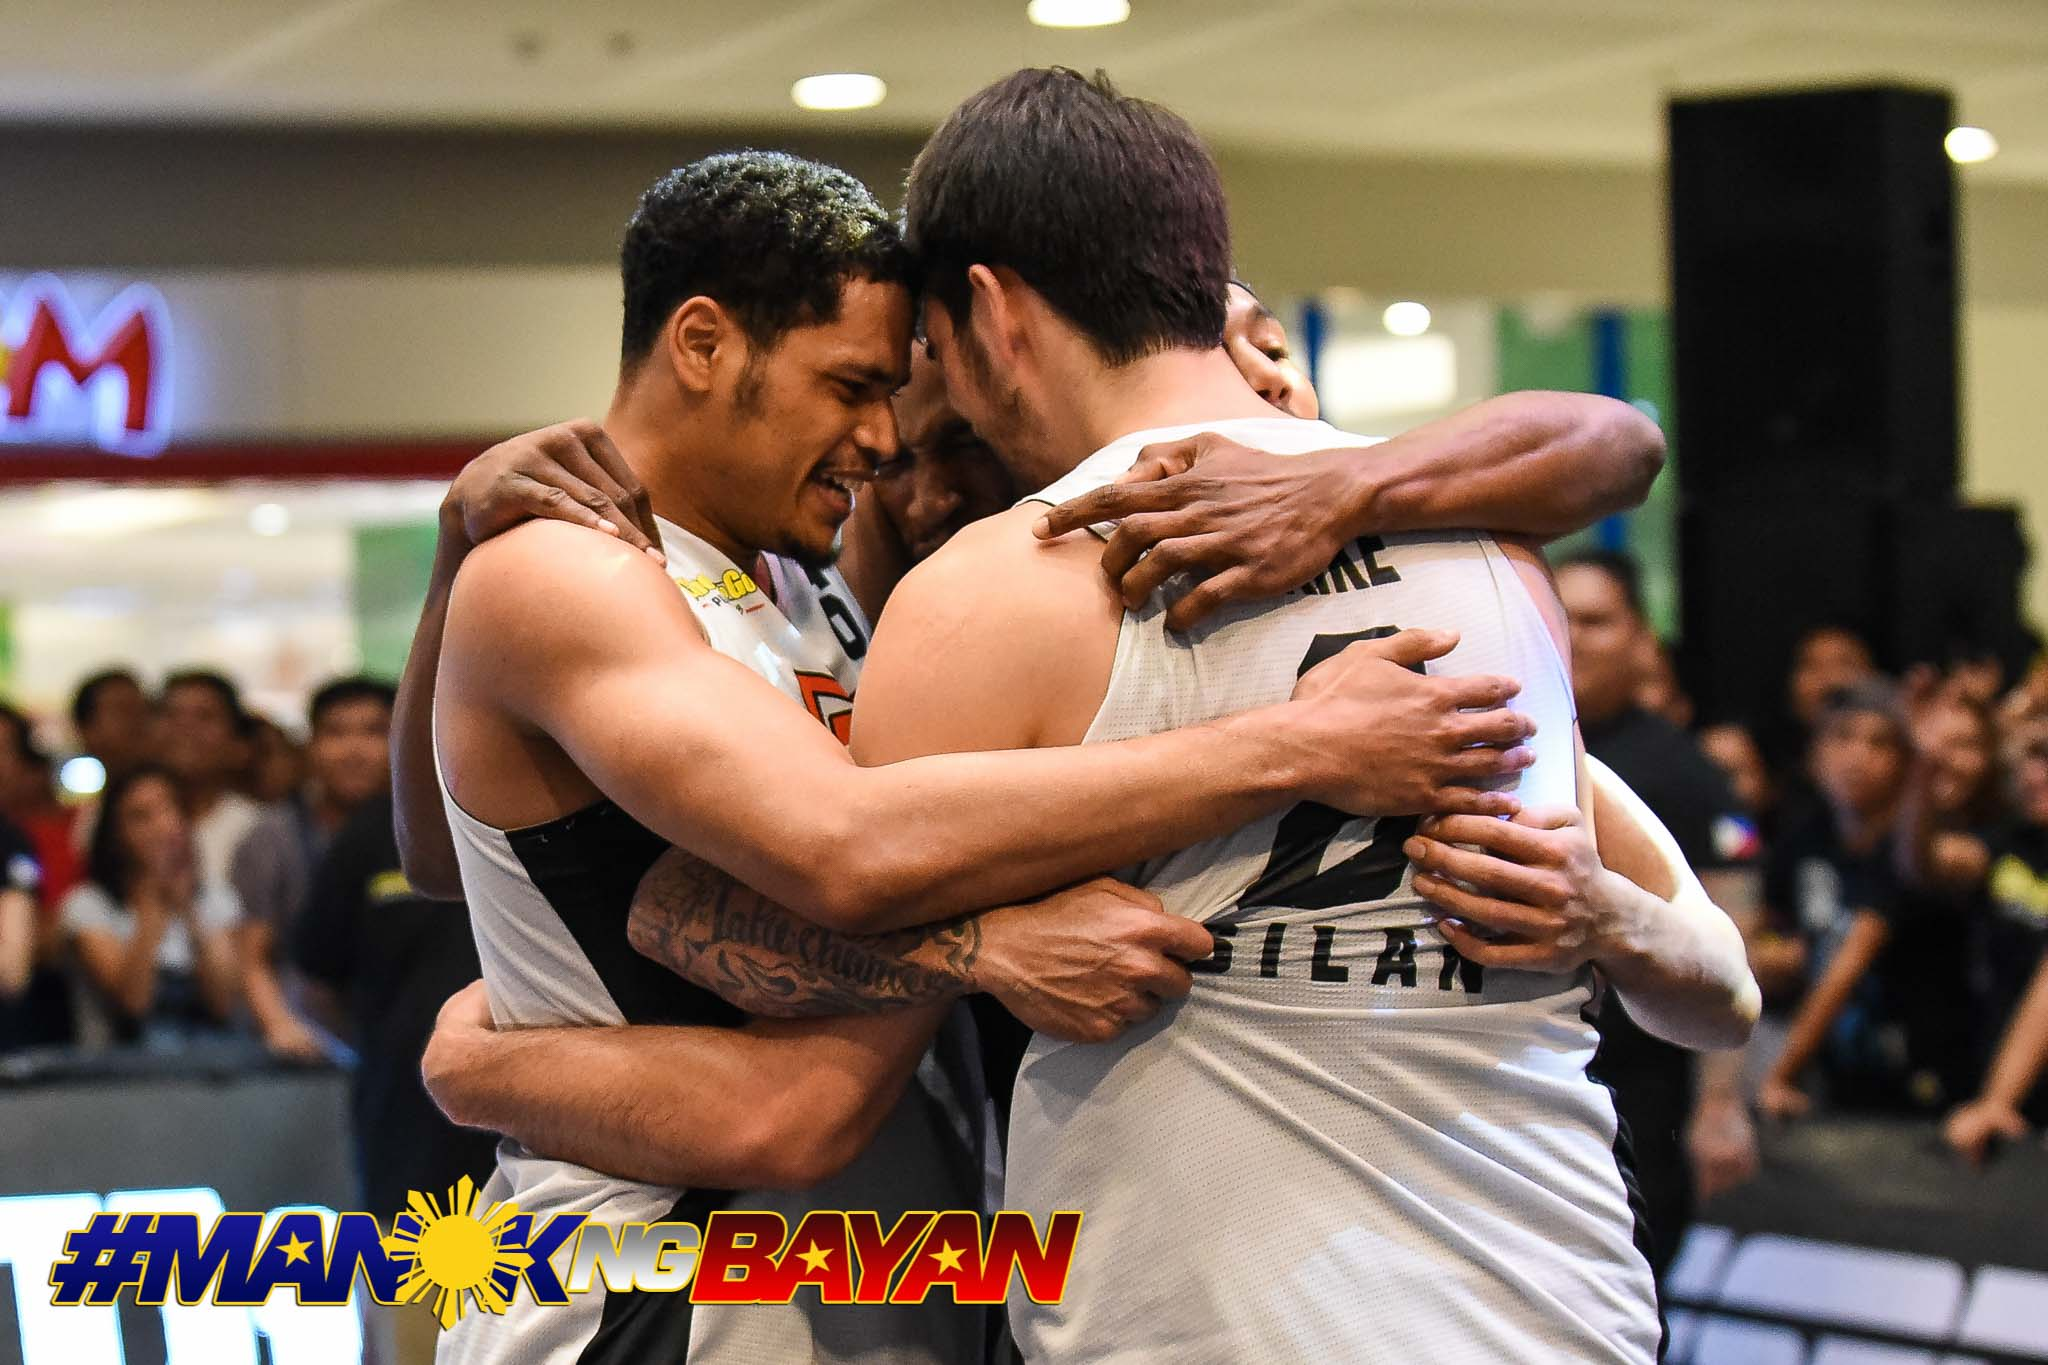 Tiebreaker Times Roosevelt Adams brings home two crowns in one week 3x3 Basketball Chooks-to-Go Pilipinas 3x3 News  Roosevelt Adams Basilan Steel 2019 Chooks-to-Go Pilipinas 3x3 Season 2019 Chooks-to-Go Pilipinas 3x3 Patriots Cup